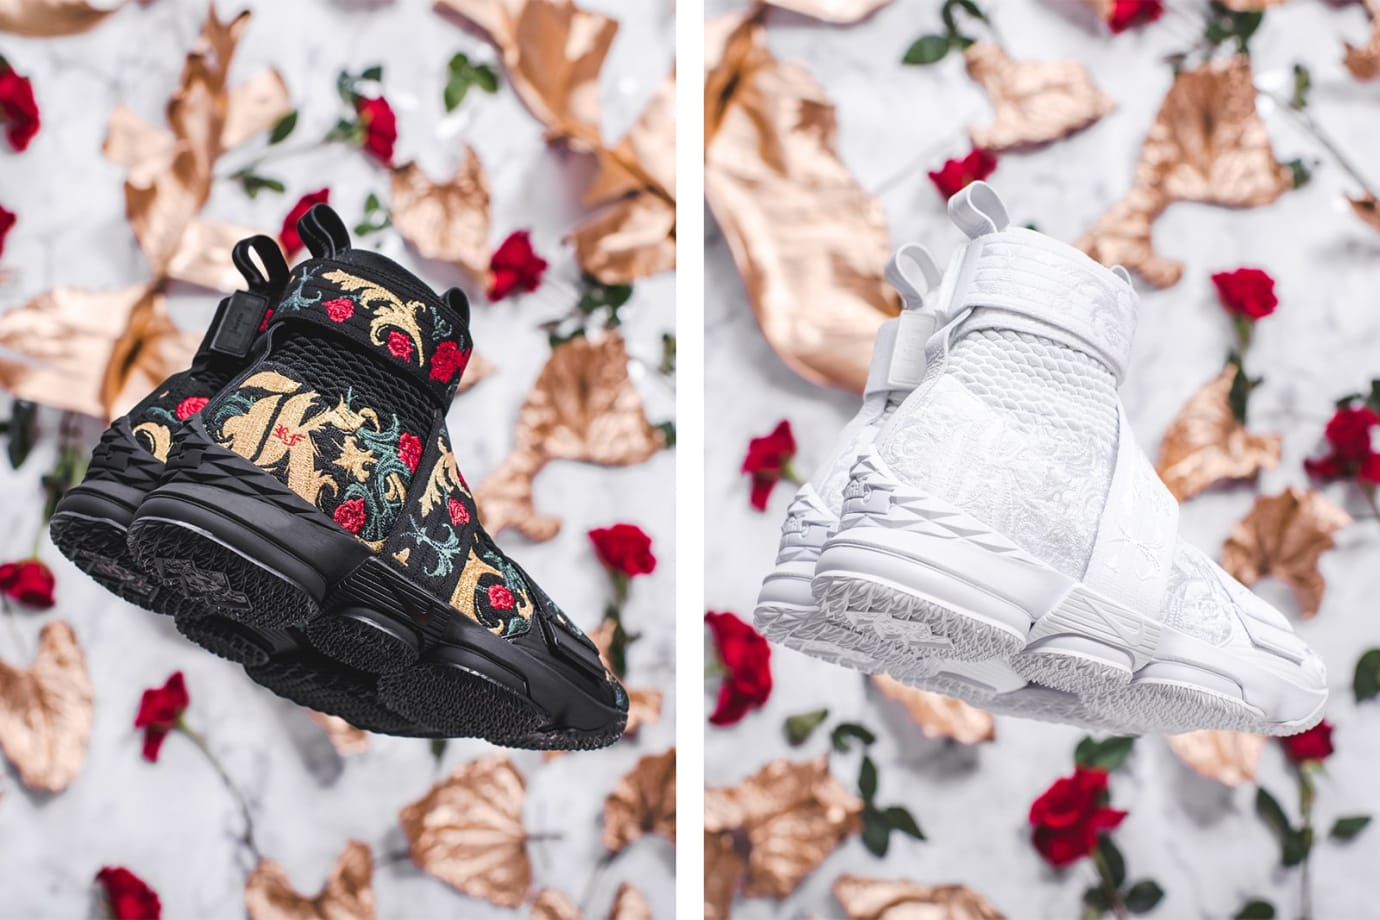 158be8683b255 Image via Kith Kith x Nike LeBron 15  Long Live the King  Chapter 2  Collection 6